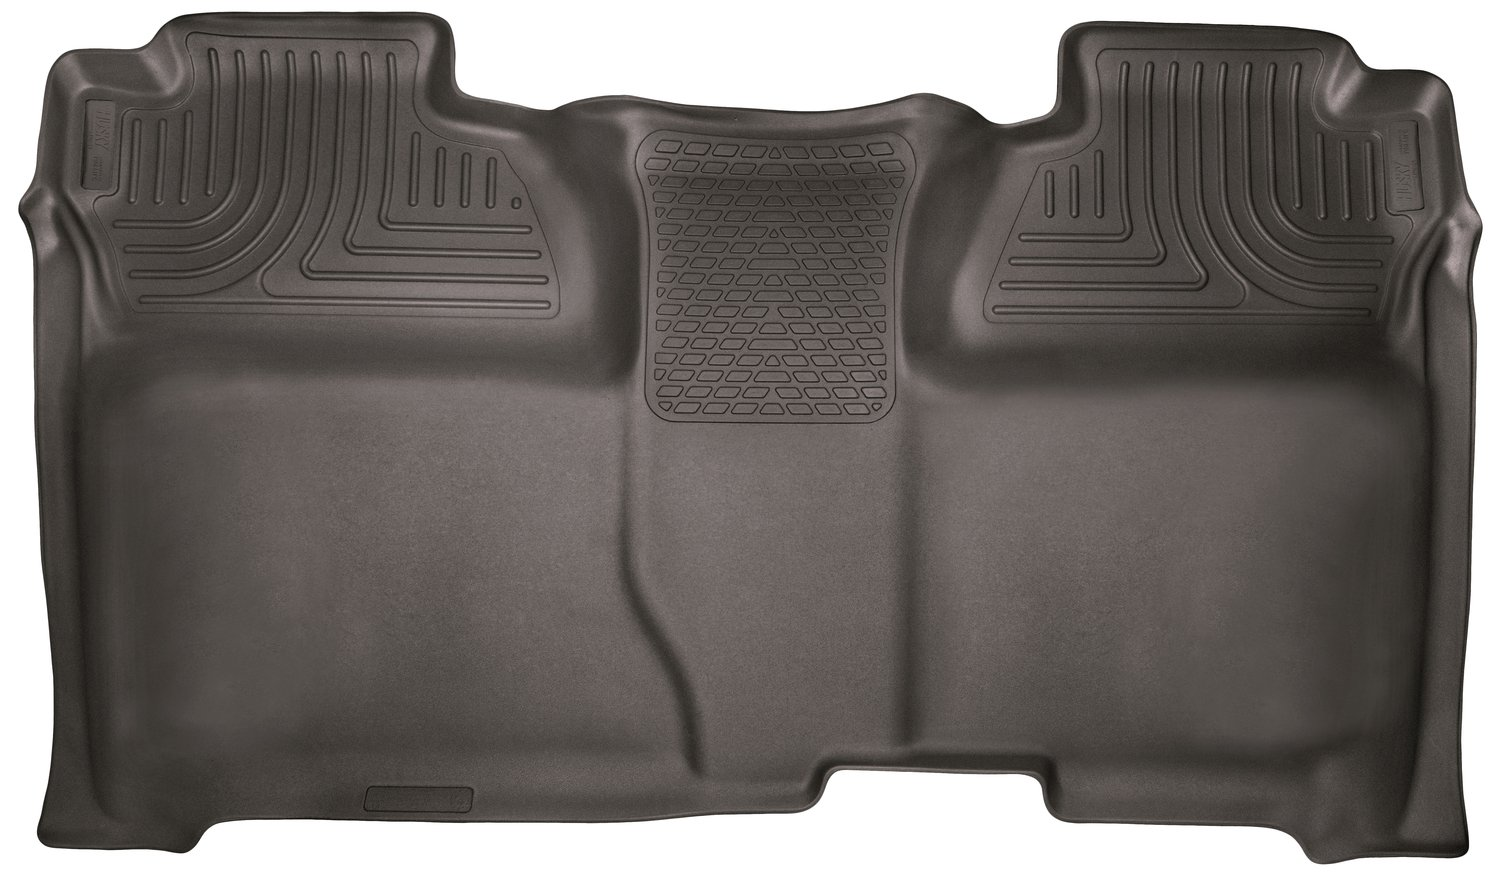 Husky Liners 53900 Cocoa Second Seat - Full Coverage Fits 14-18 1500, 15-19 Silverado/Sierra 2500/3500 Crew Cab by Husky Liners (Image #1)